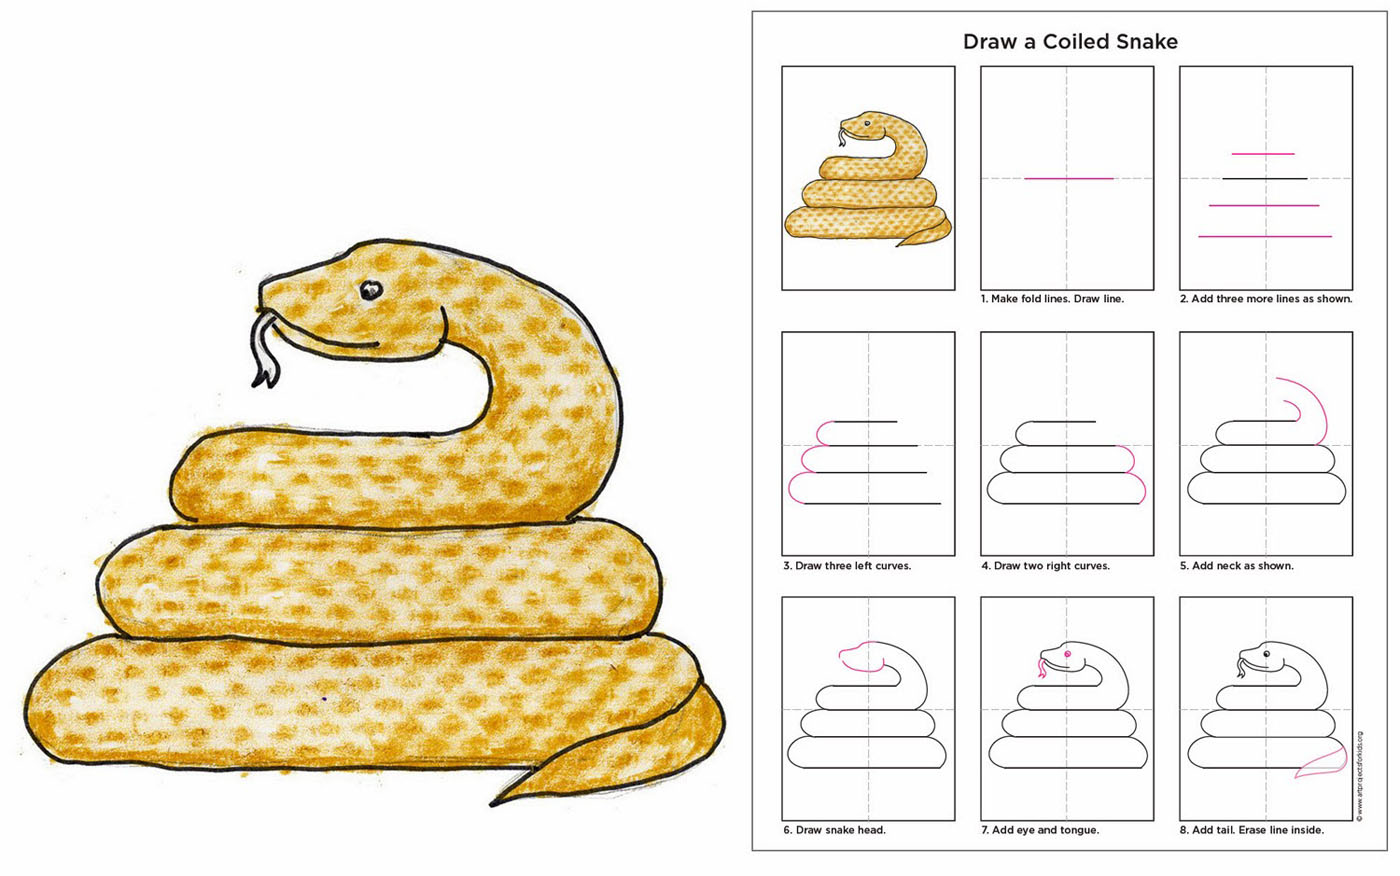 1400x876 Draw A Coiled Snake